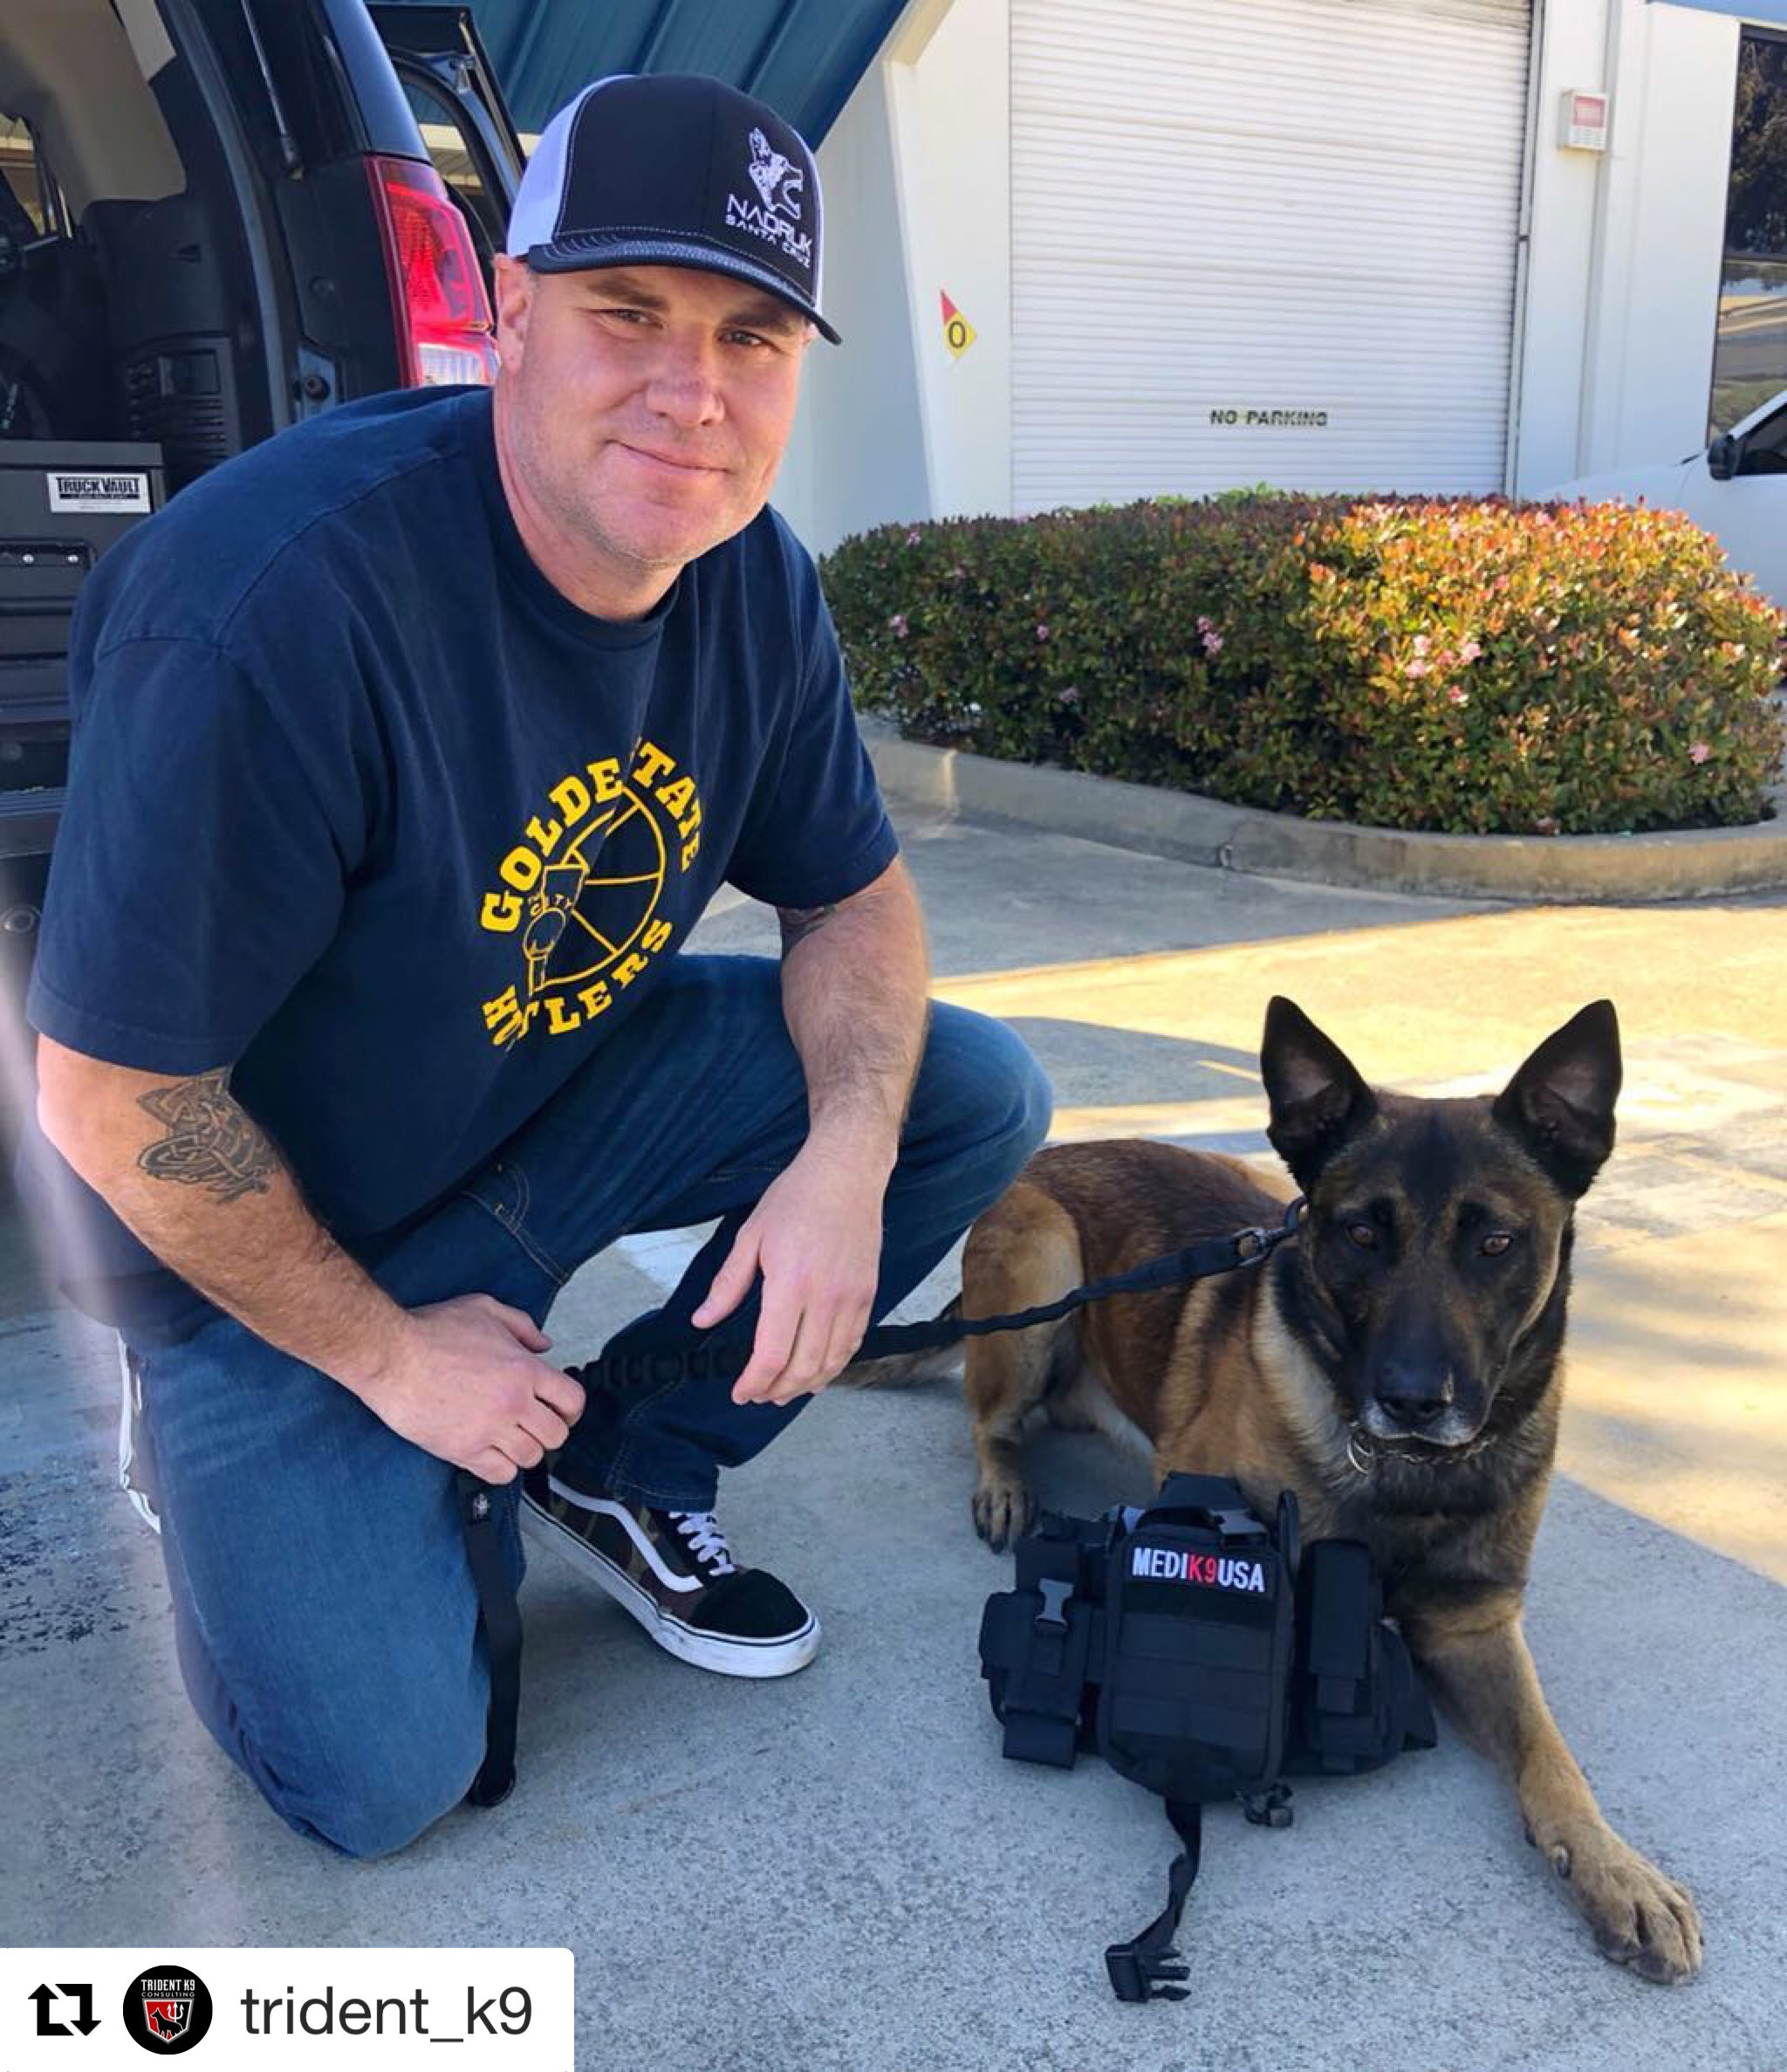 4/10/19  - K9 Diesel of the South San Francisco Police Department, Ca